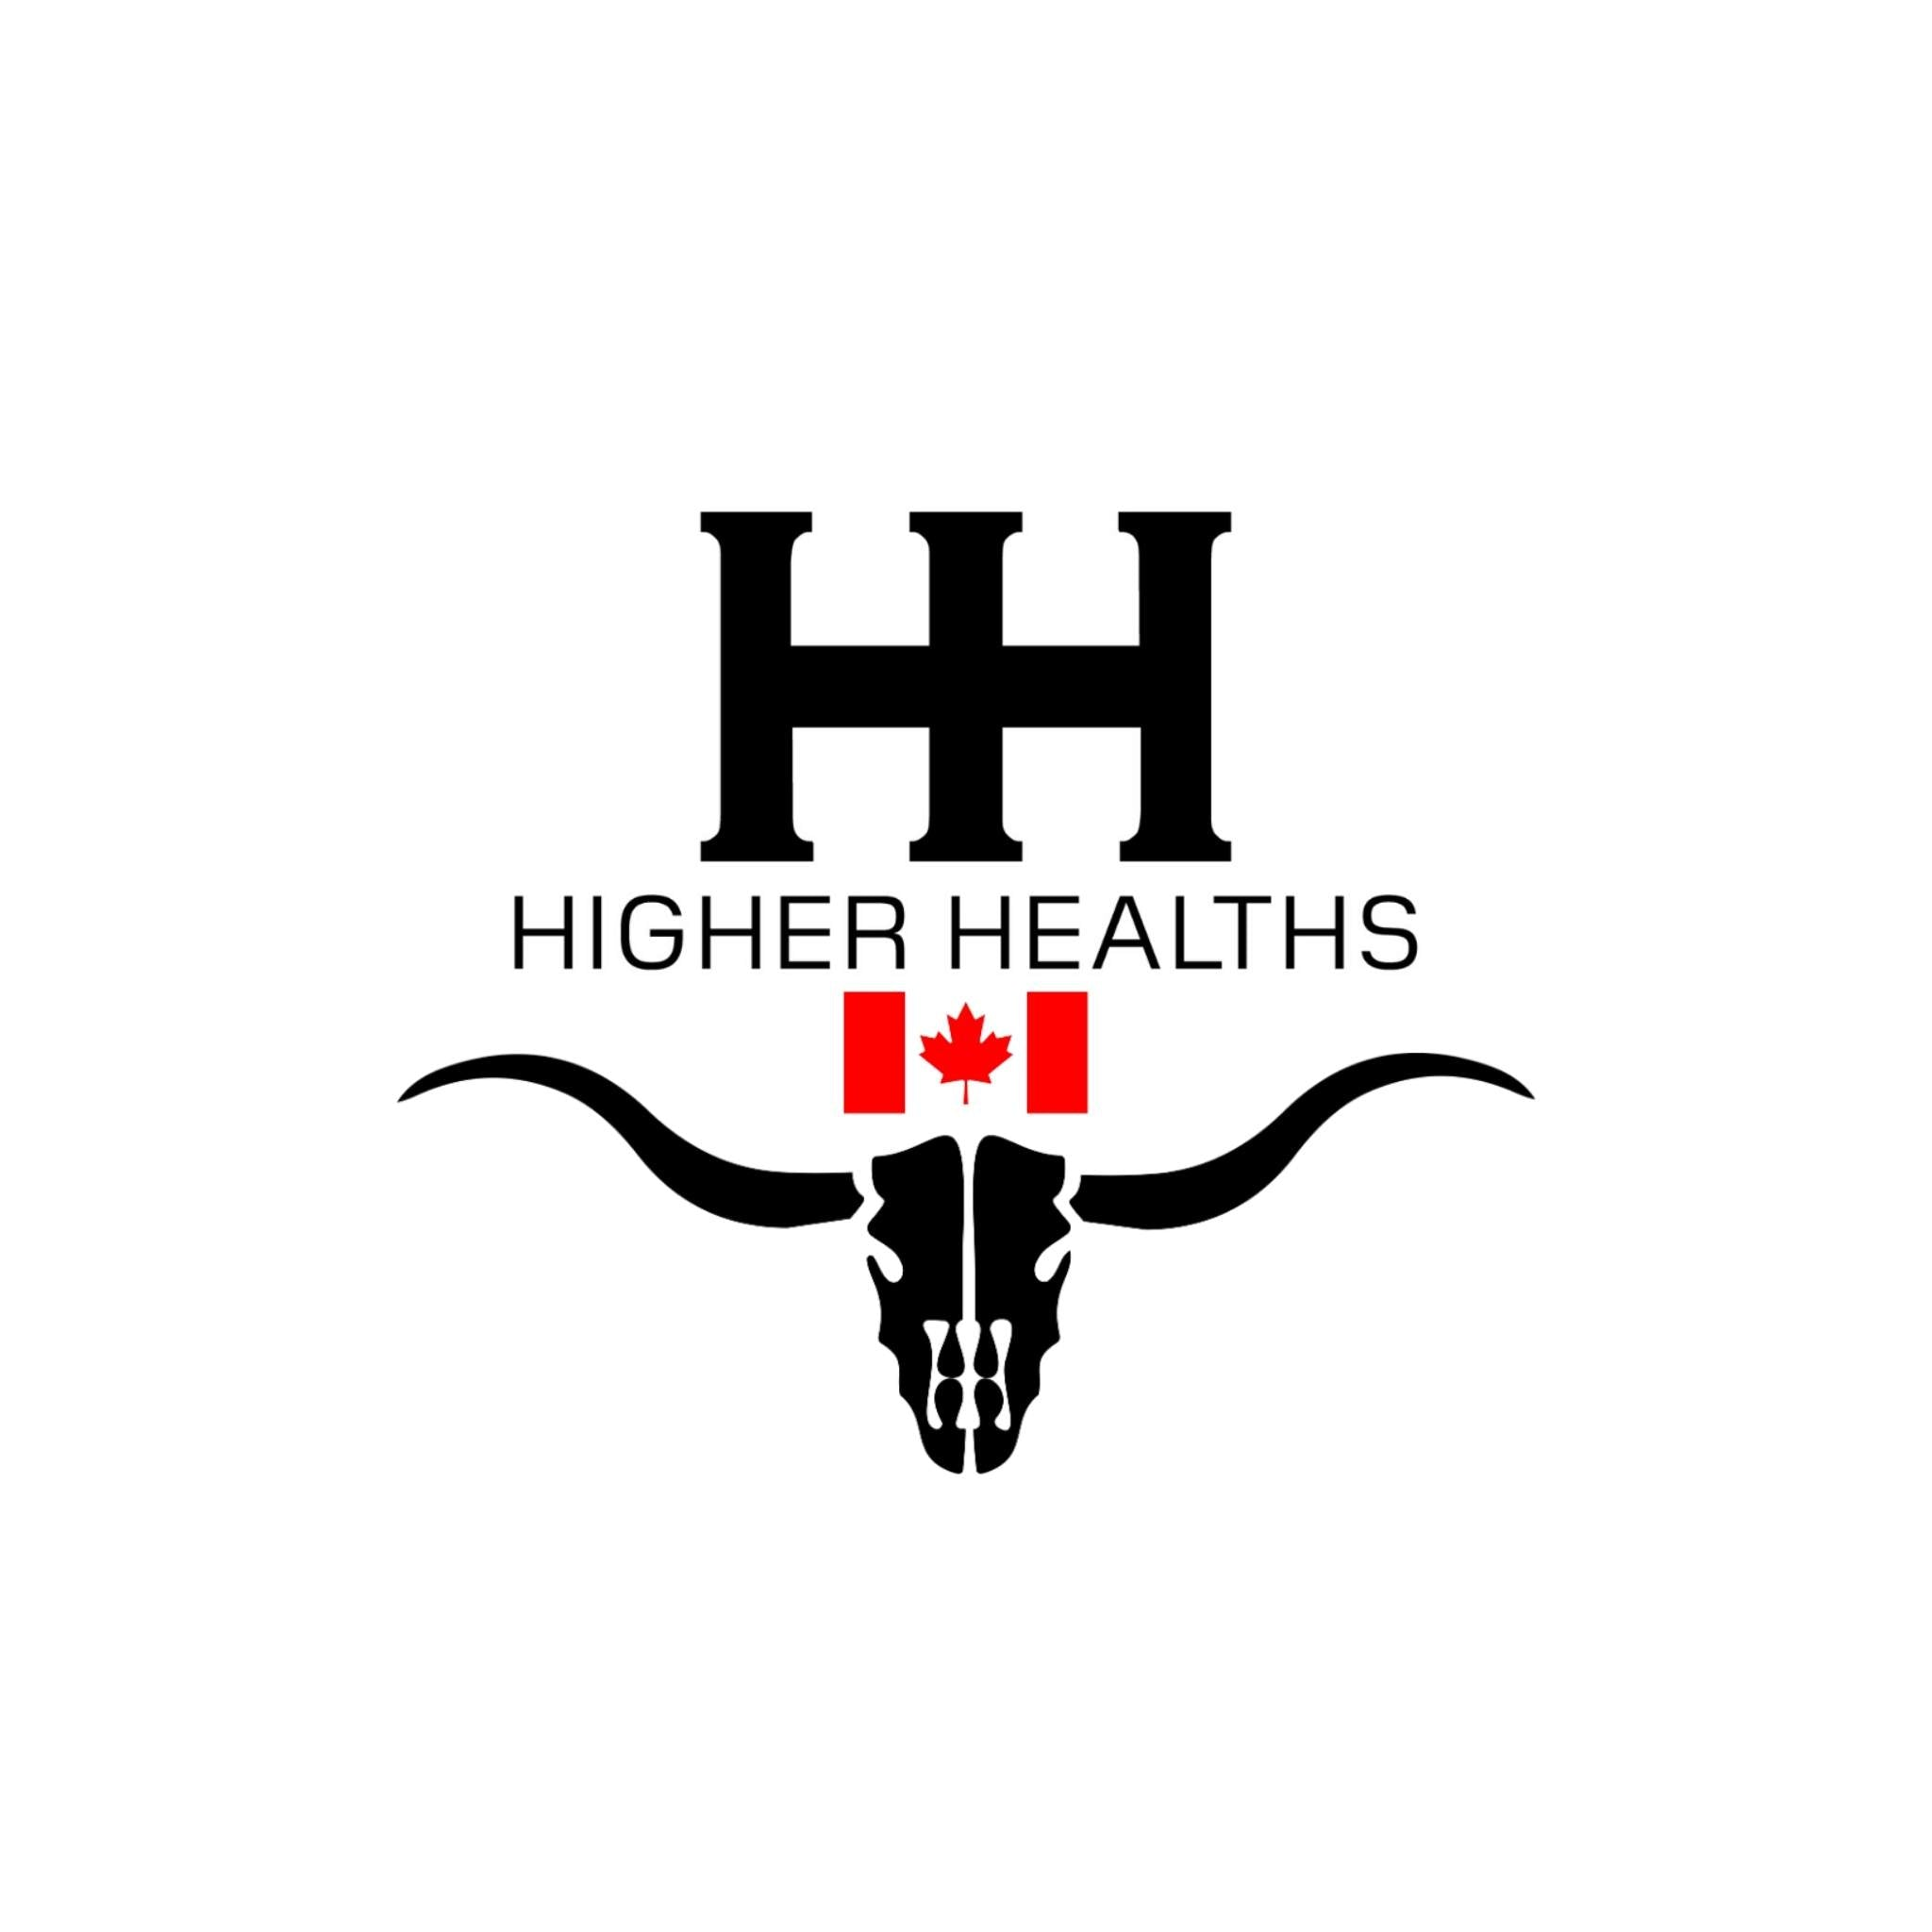 Higher Healths Logo, Team Perfect